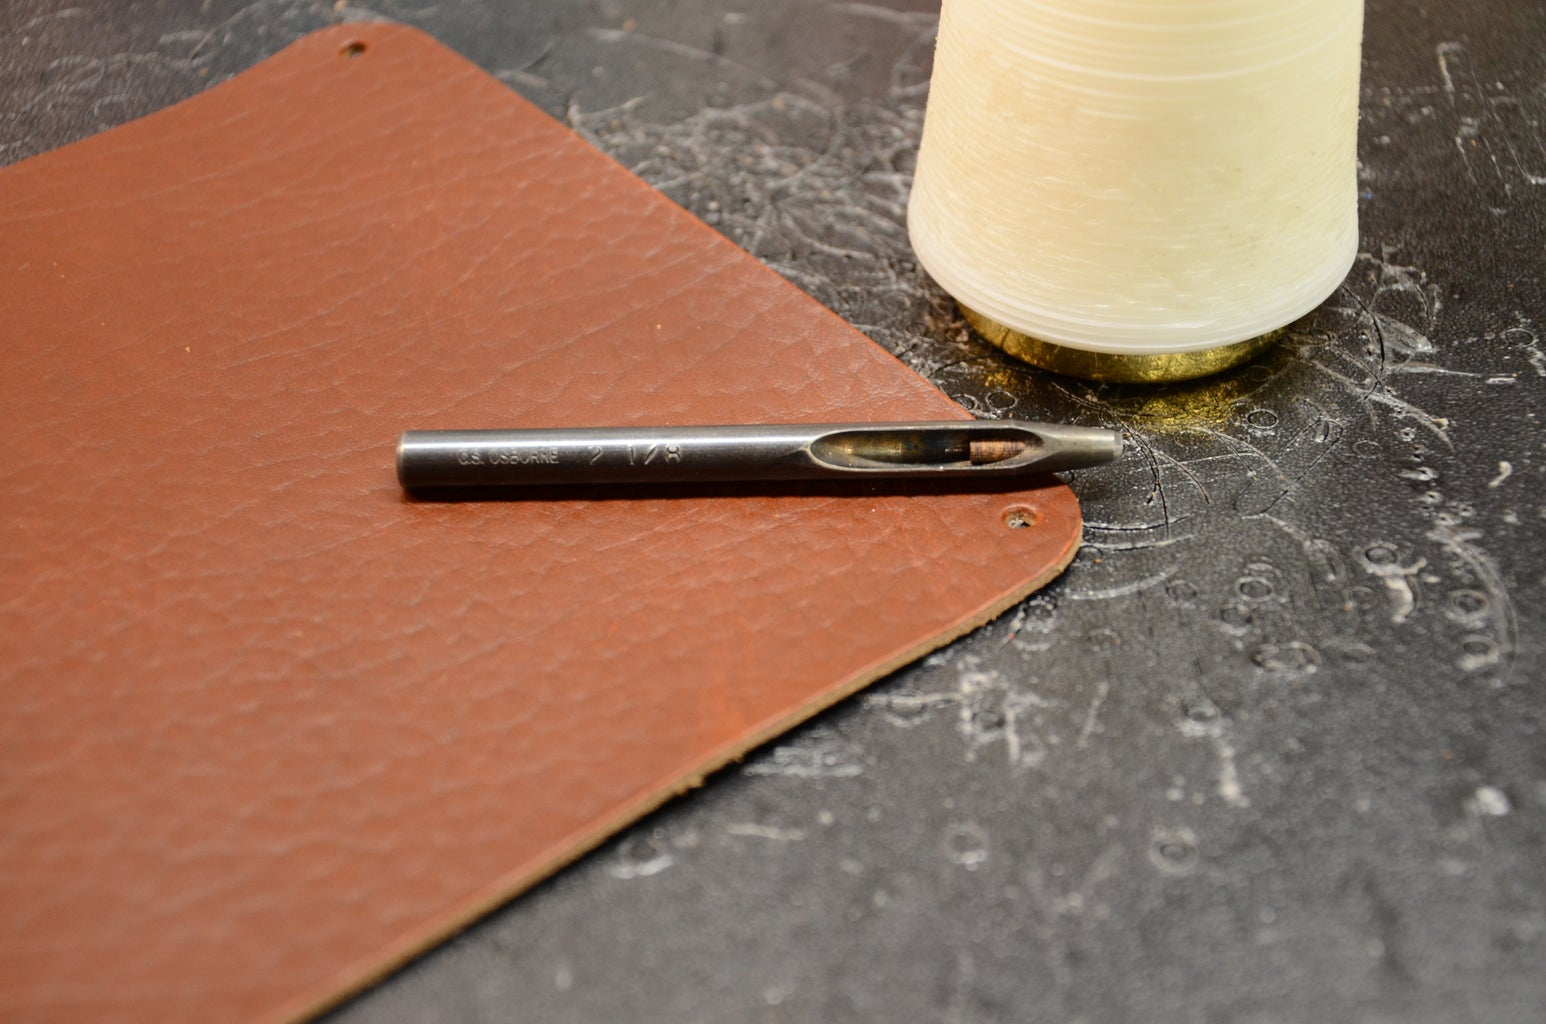 Step 3: Rounding Corners and Marking Stitch Lines